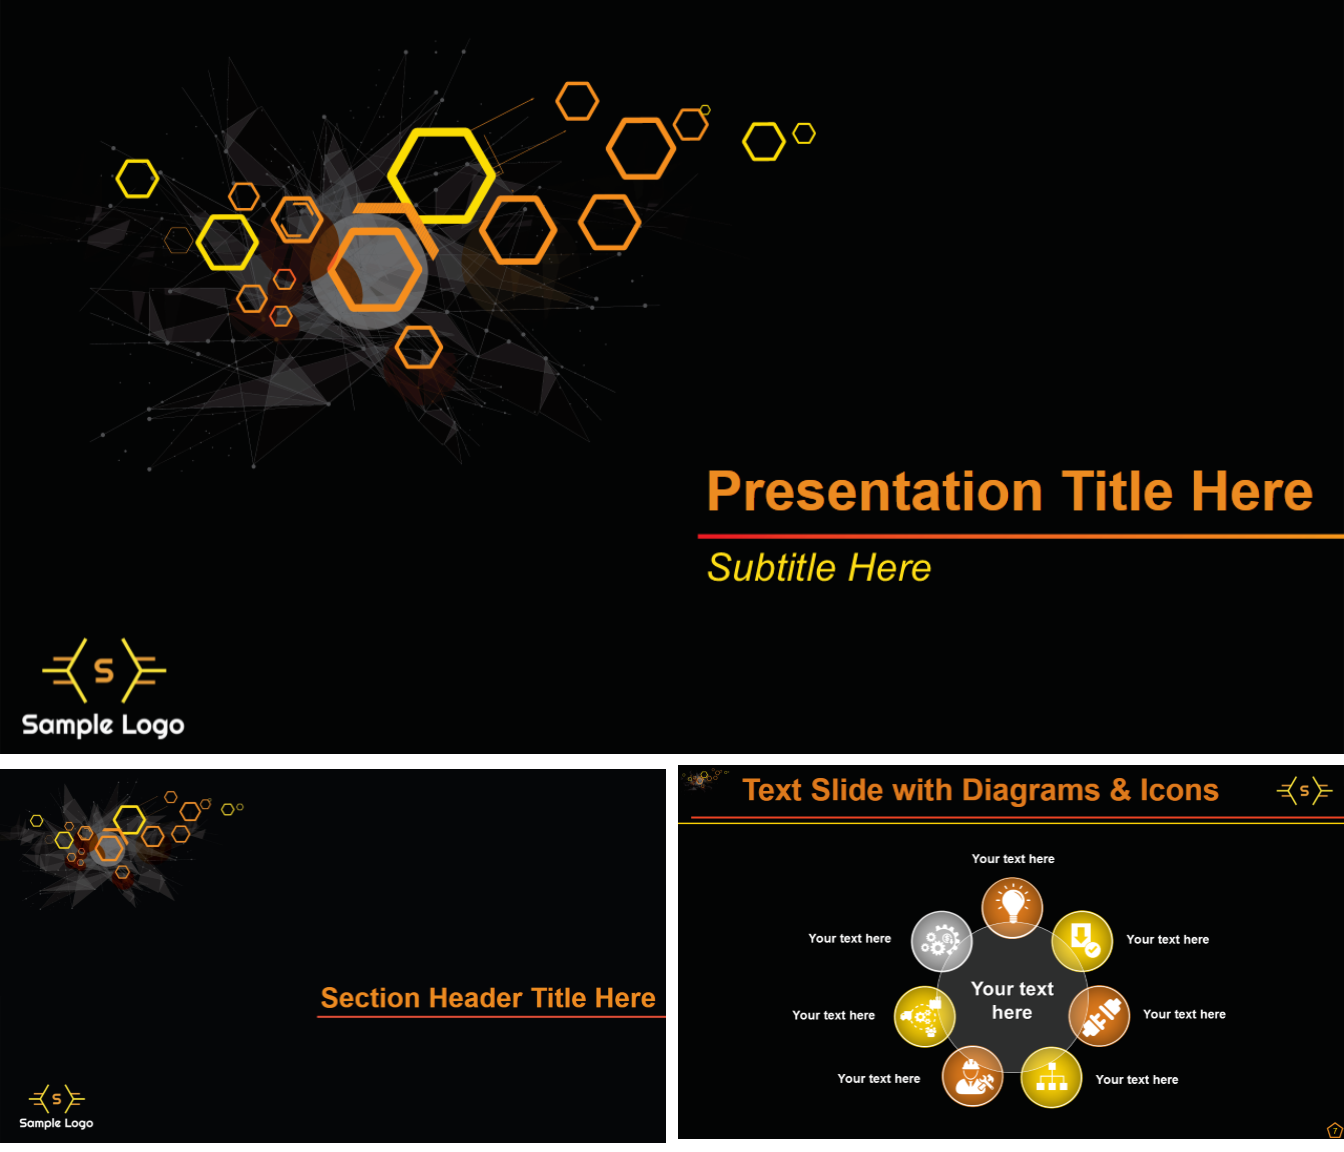 7 amazing powerpoint template designs for your company or personal it defines the colors shapes slide header and footer and placement of images and text so that the entire deck looks spick and span toneelgroepblik Images